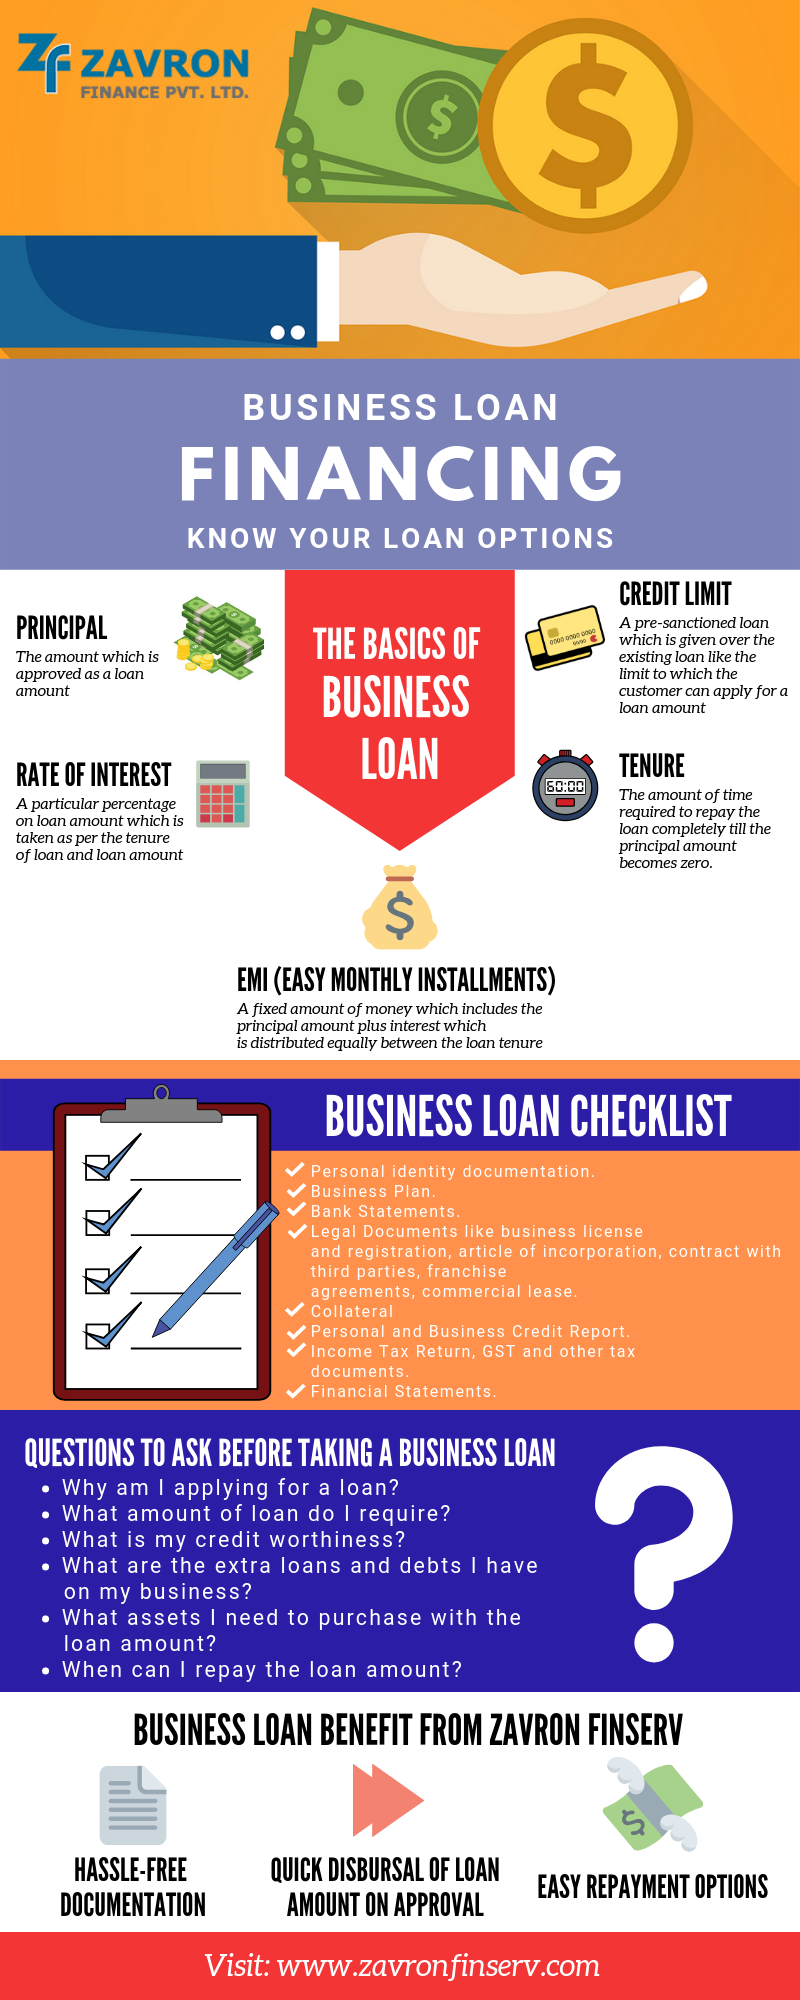 Apply For Instant Personal Loan Online At Zavron In 2020 Business Loans Personal Loans Finance Loans